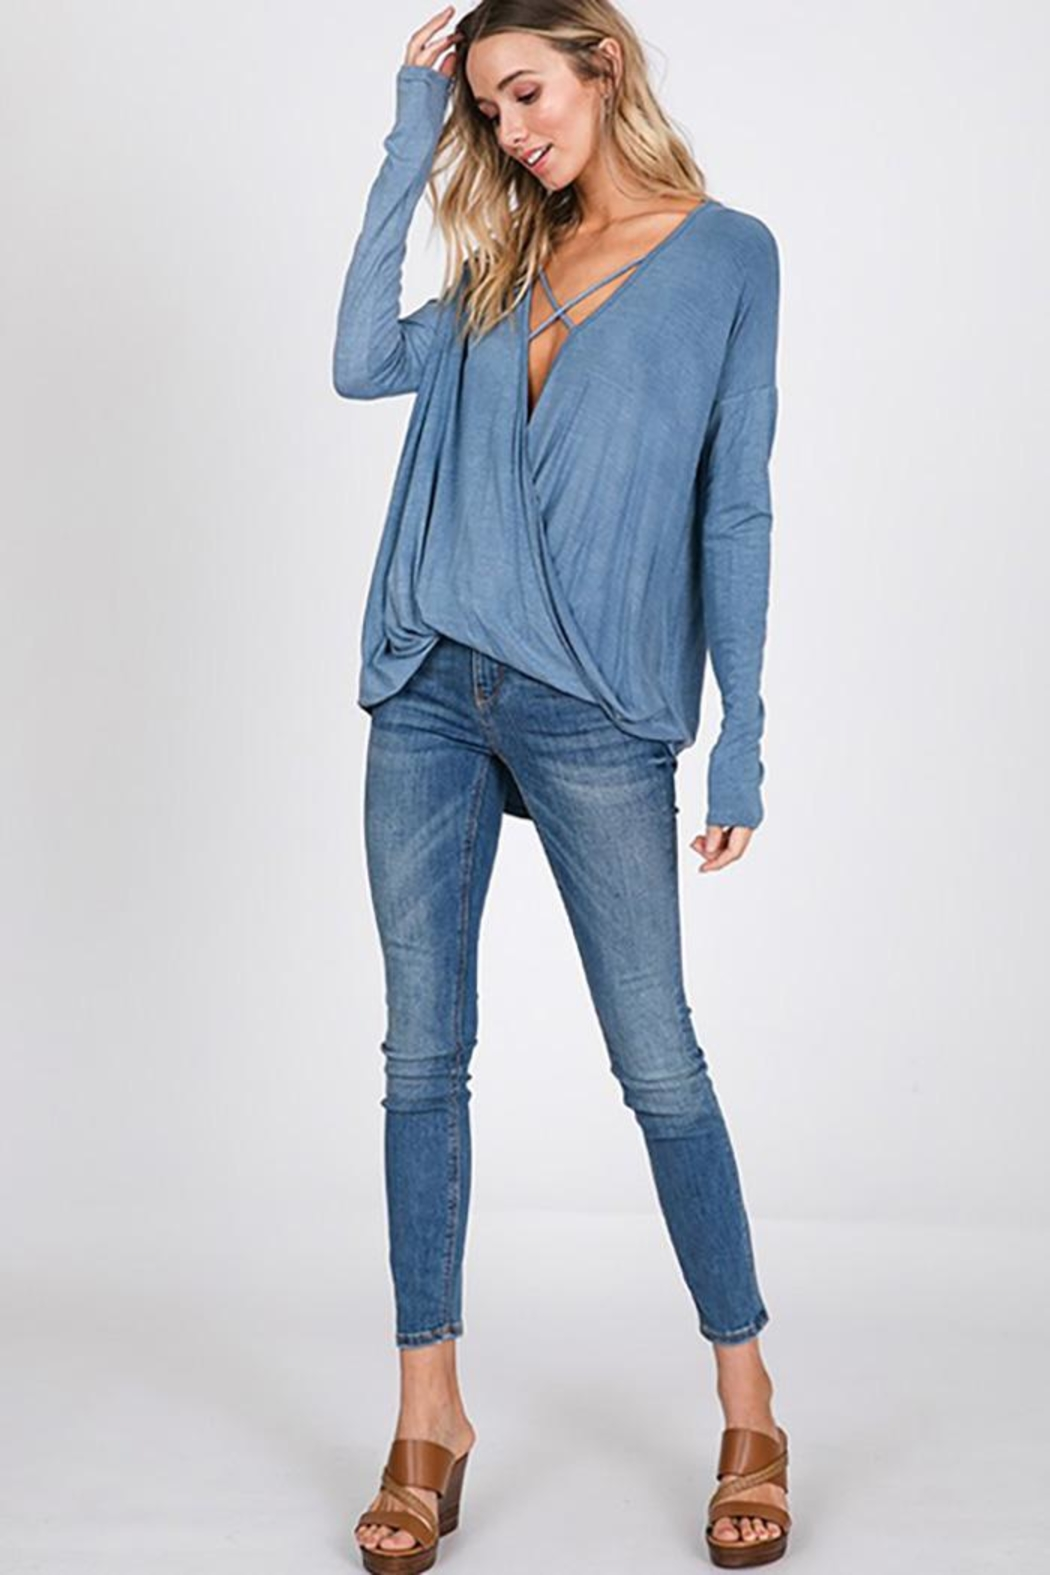 CY Fashion Washed Front Cross Detail Top - Front Full Image